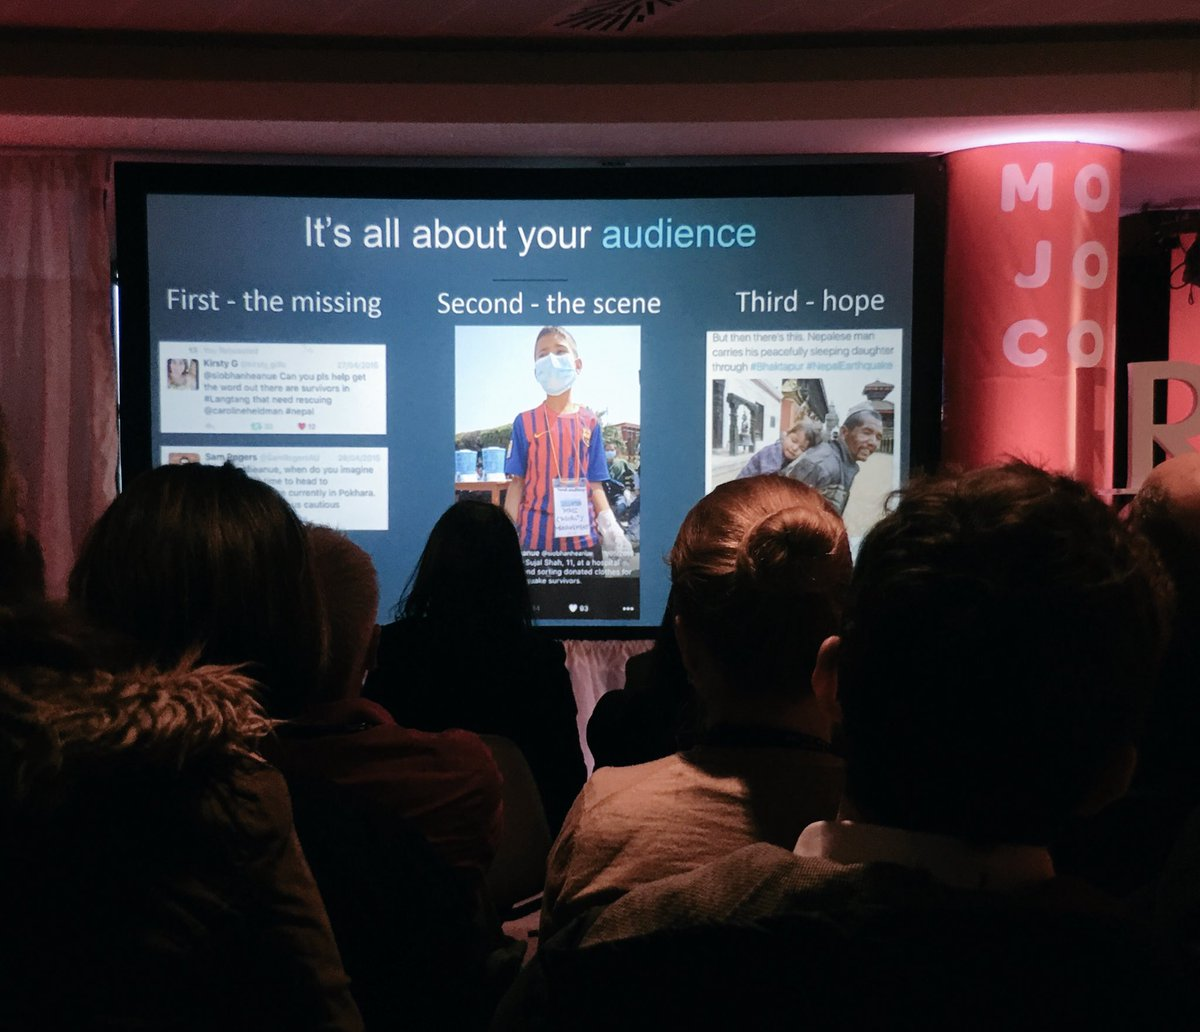 + link it with the brand-message you are working with. @siobhanheanue about #socialmedia communication.  #mojocon https://t.co/7hc2NPQ1Zs